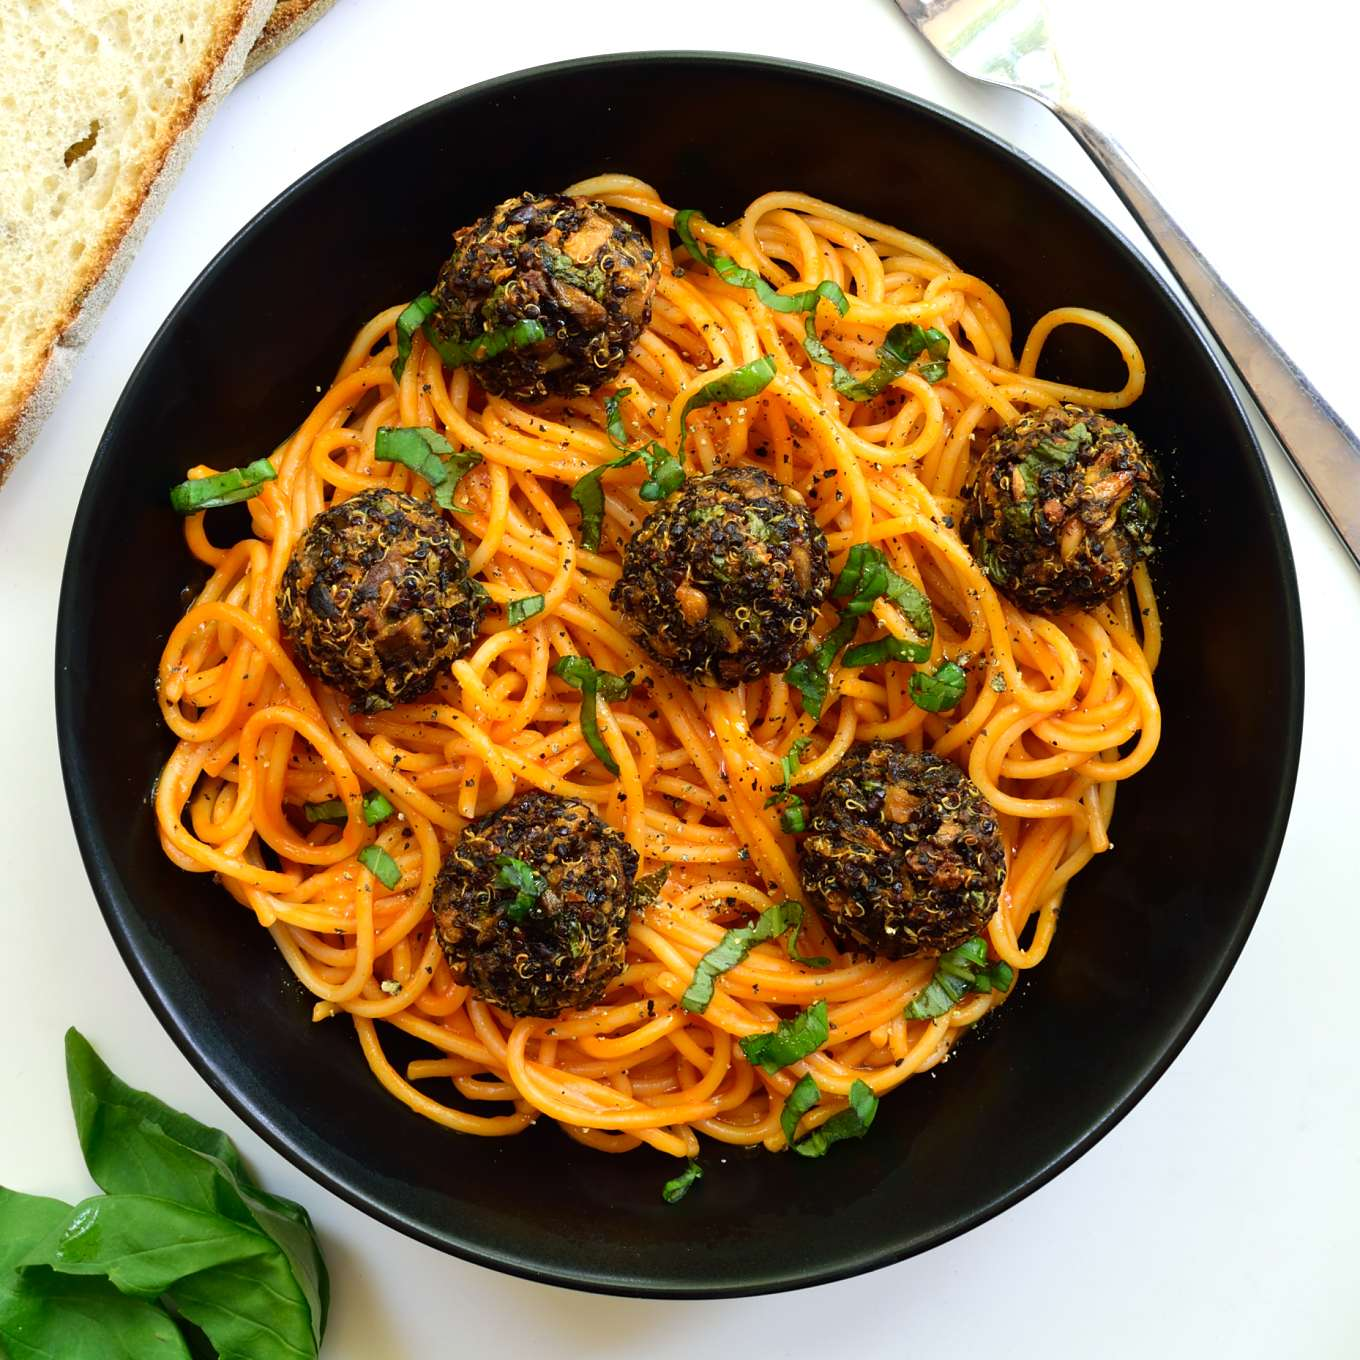 Spaghetti with quinoa meatballs is a hearty, satisfying dish. These vegan meatballs are super easy to make and are baked to make them light and healthy.